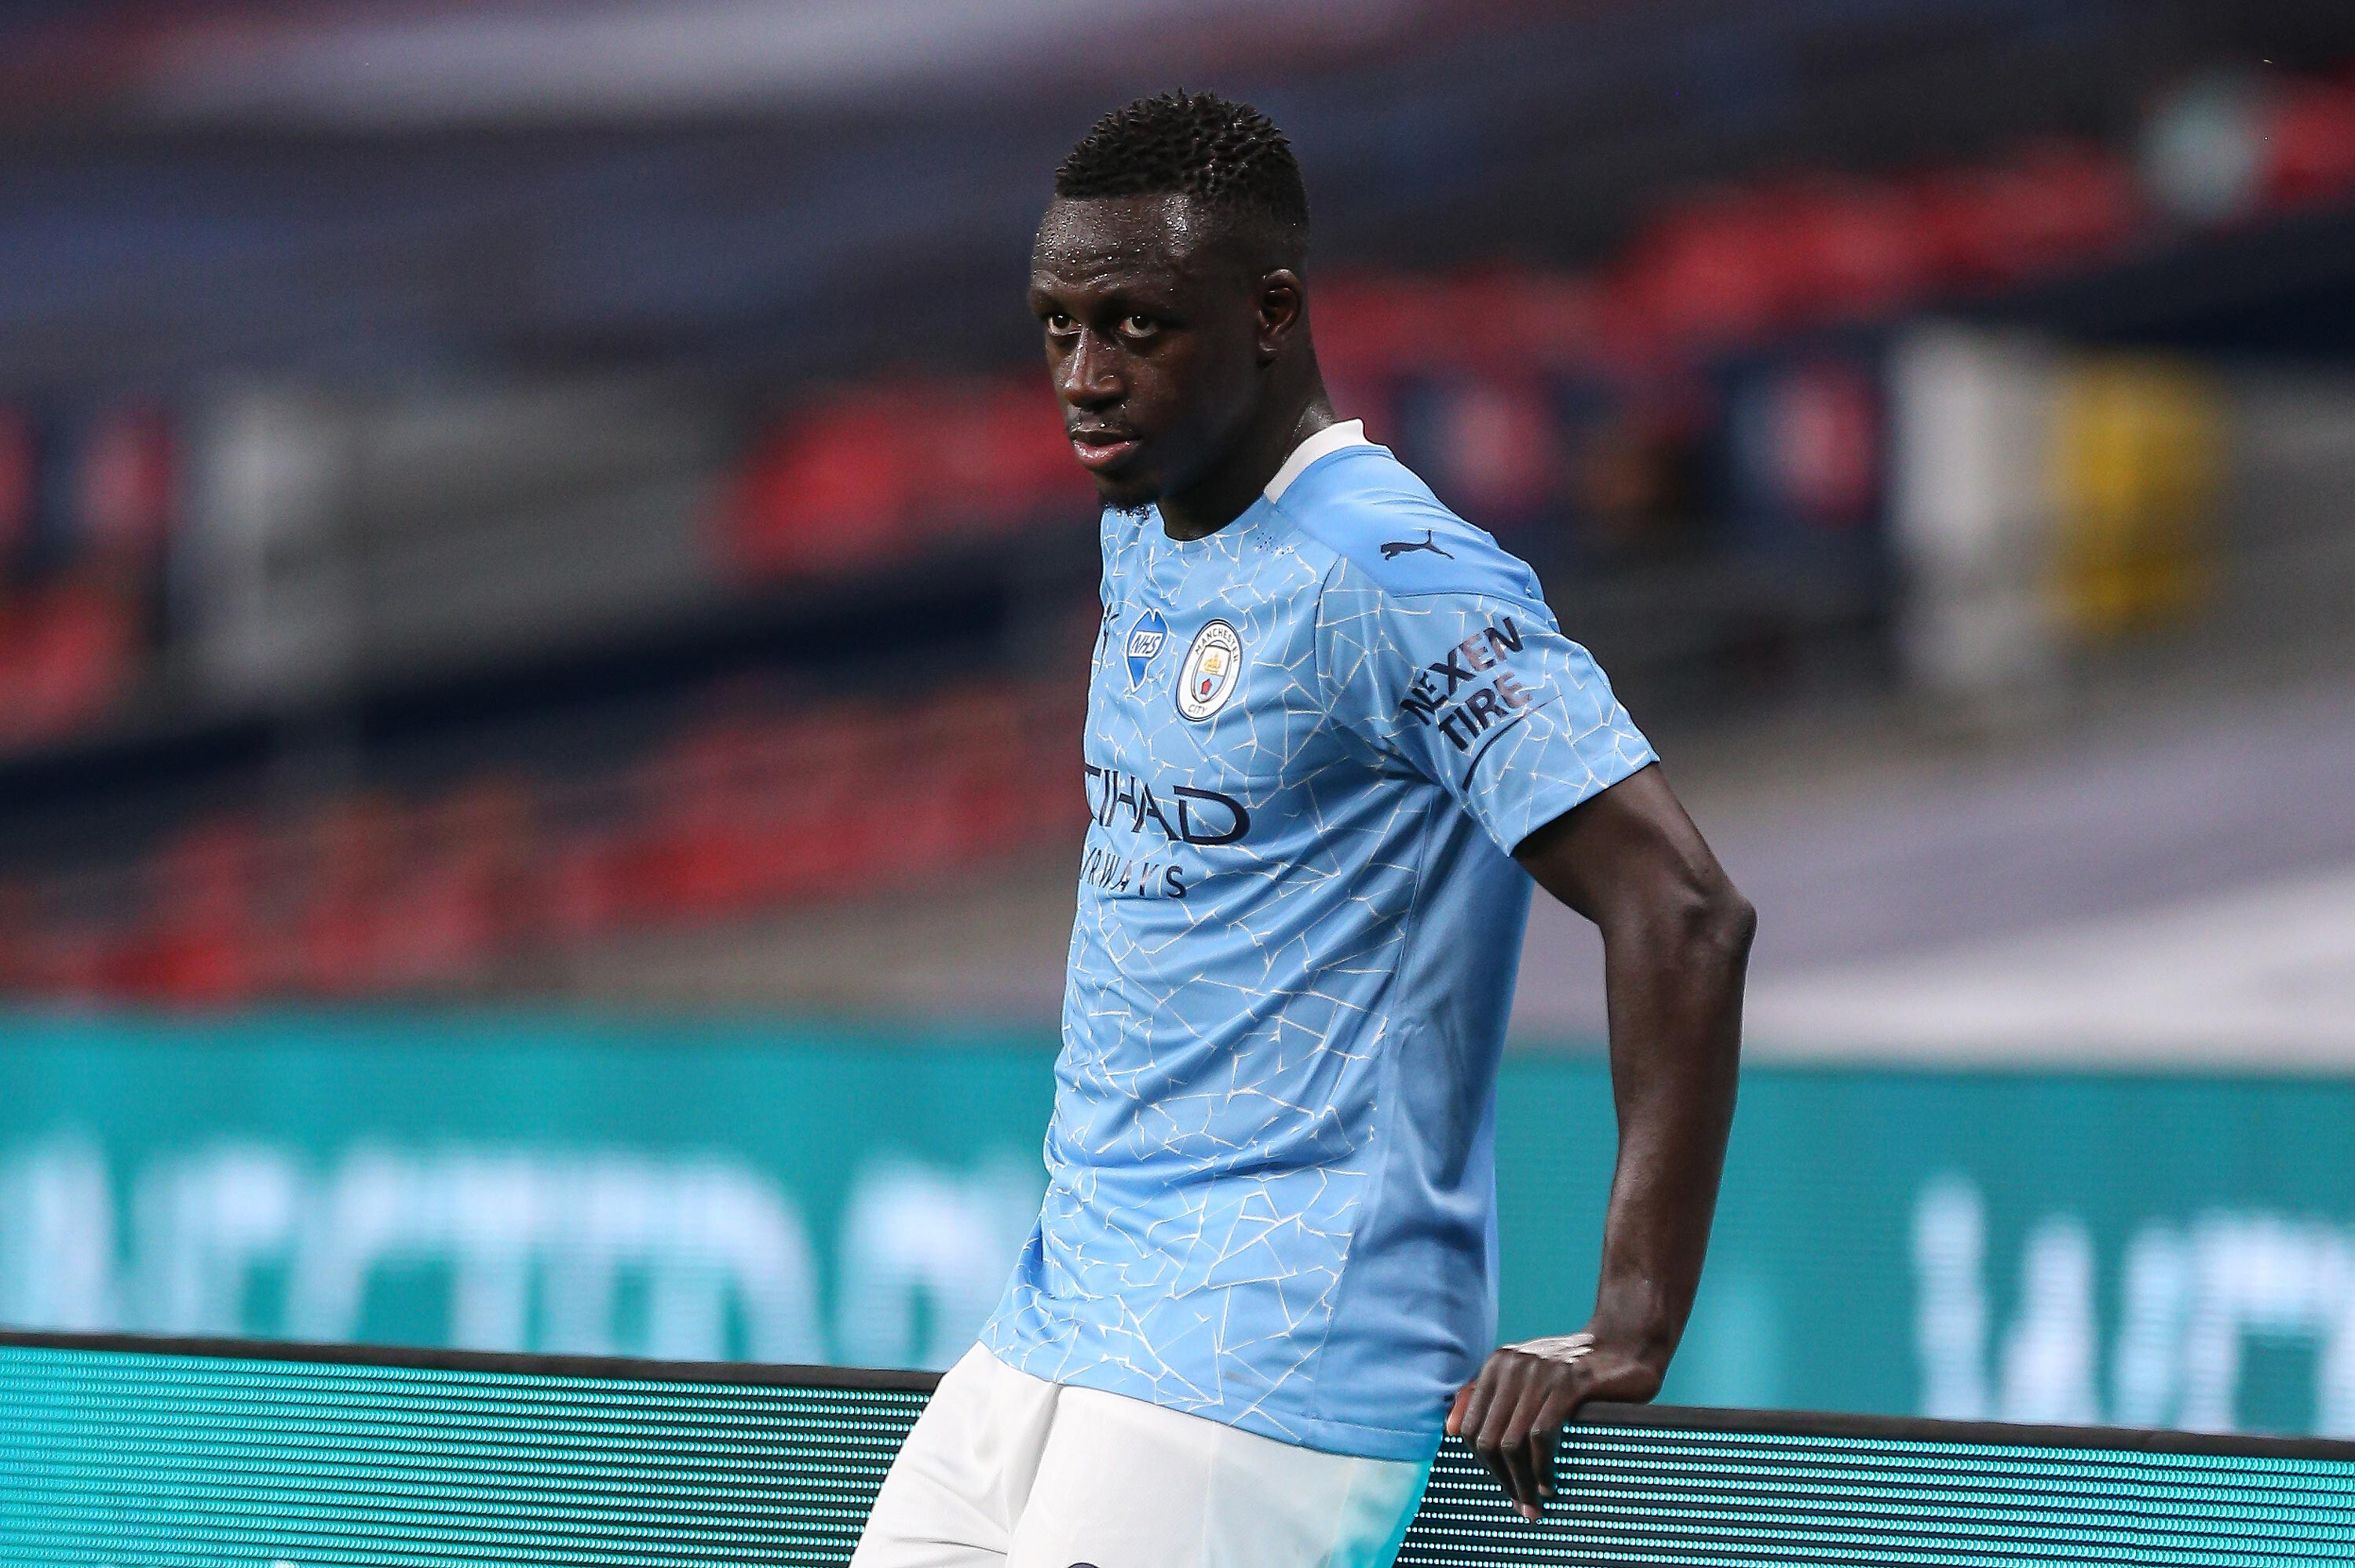 Manchester City's Benjamin Mendy charged with four counts of rape and one count of sexual assault